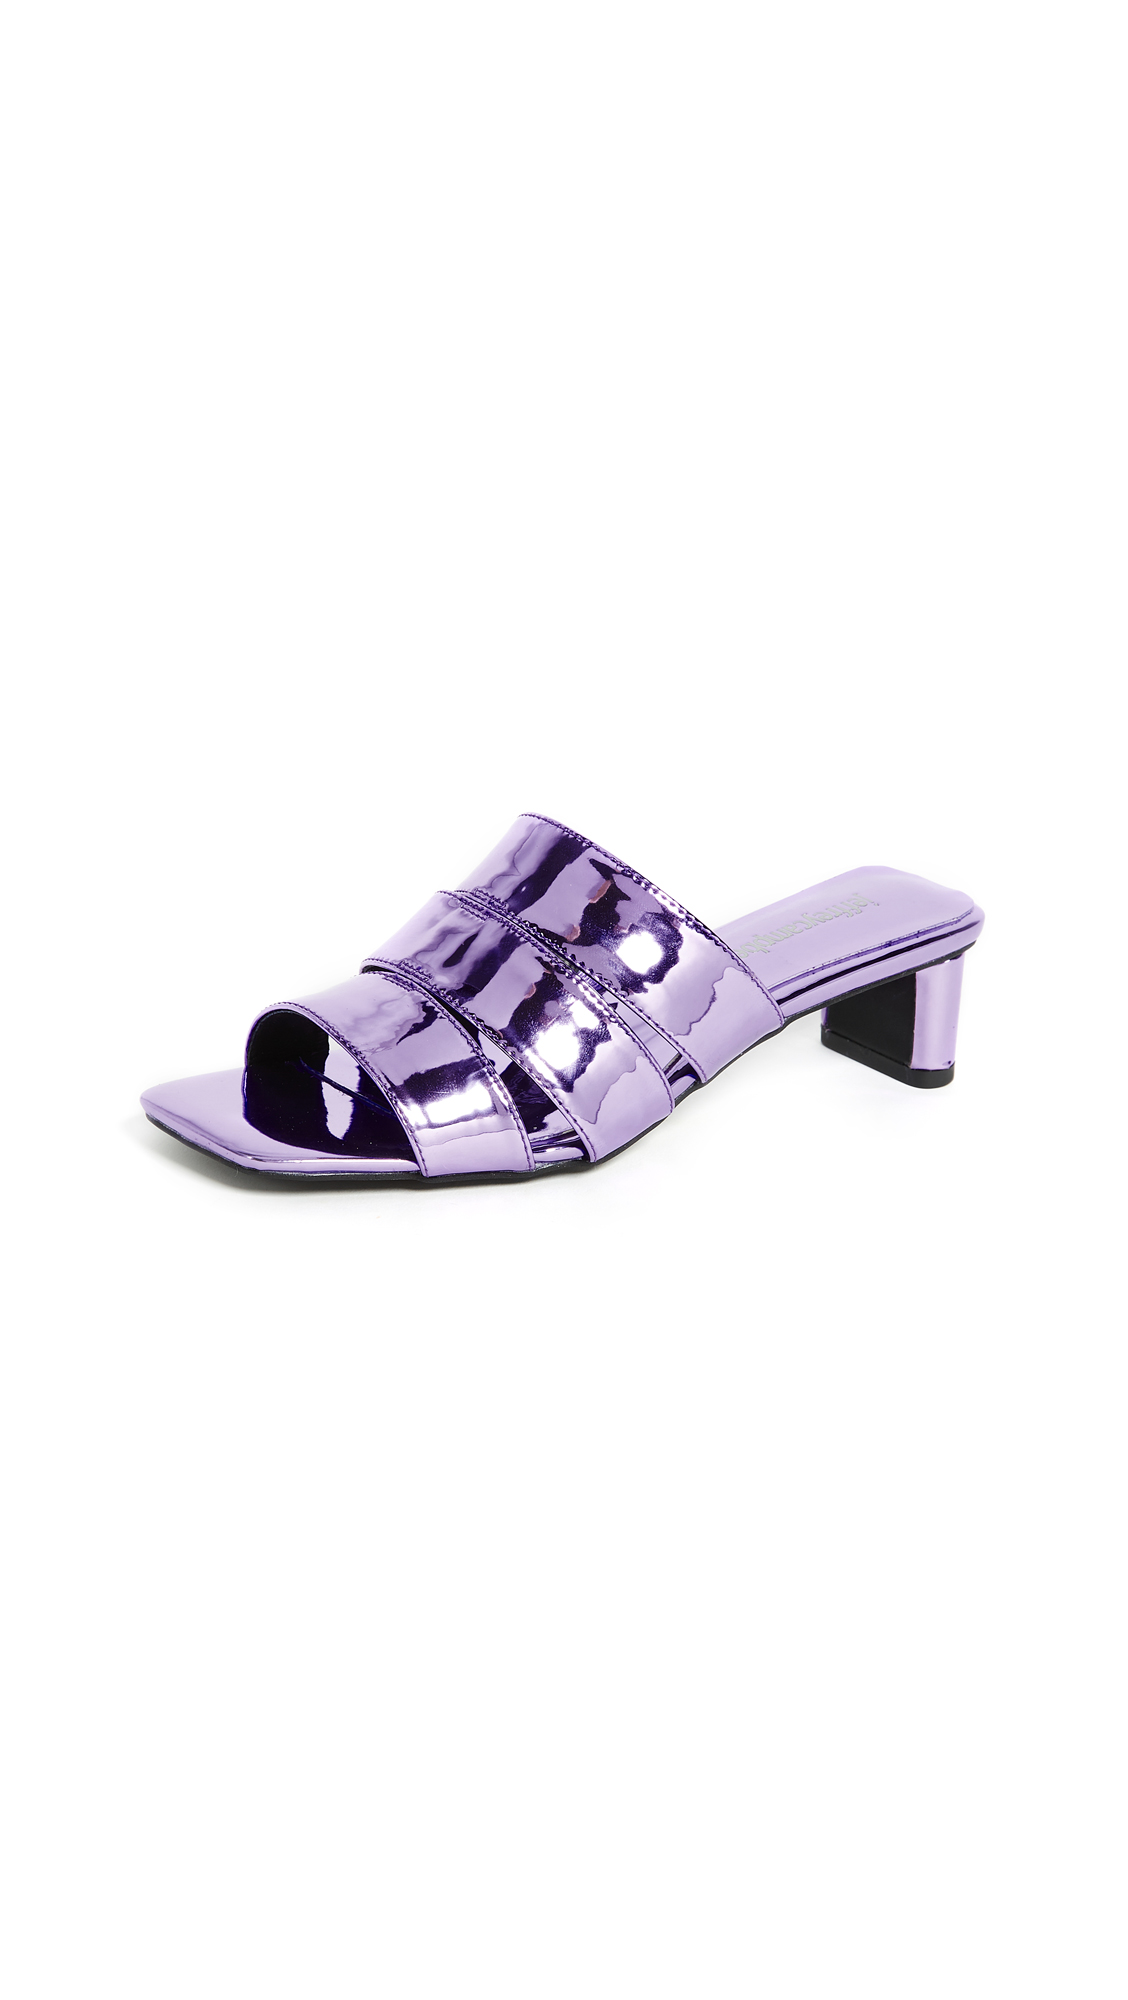 Jeffrey Campbell Rhymes Metallic Slide Sandals